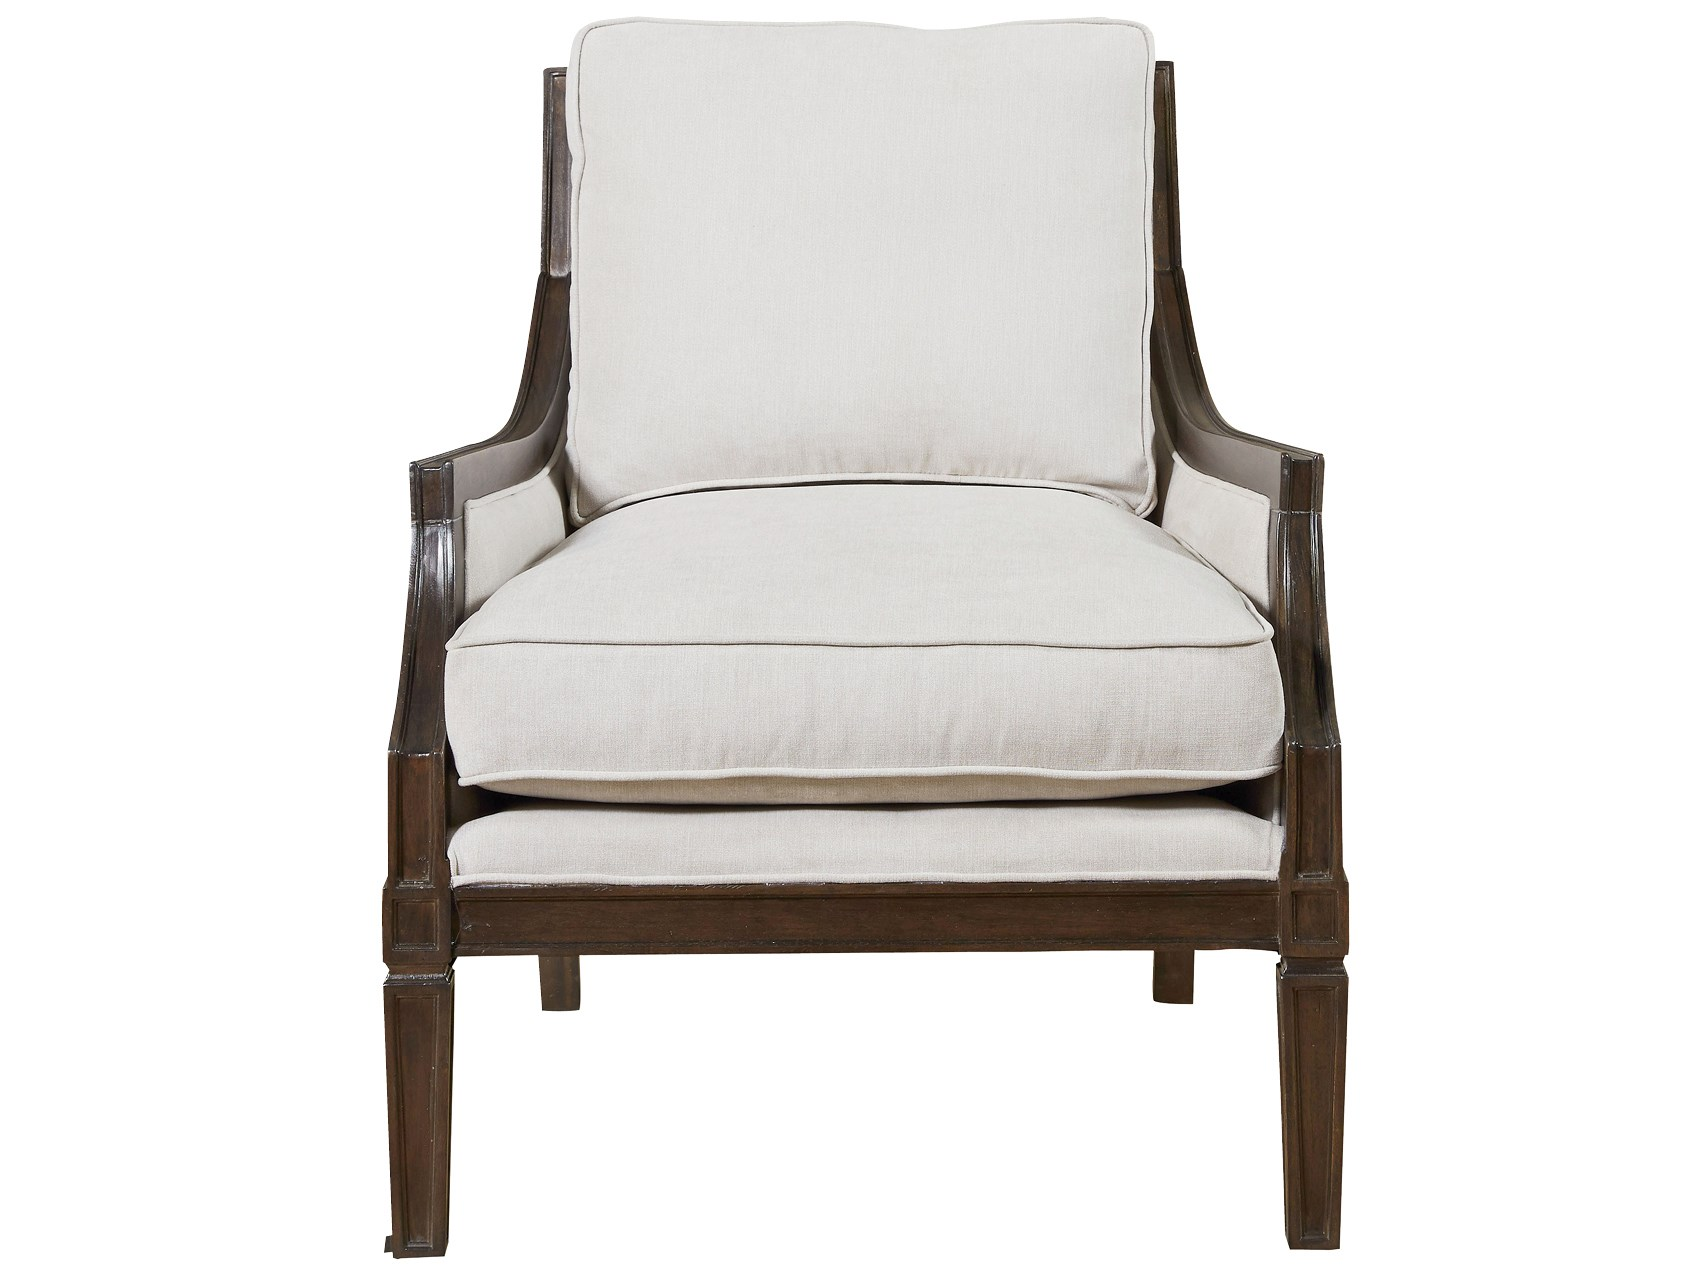 Franklin Street Accent Chair - Special Order